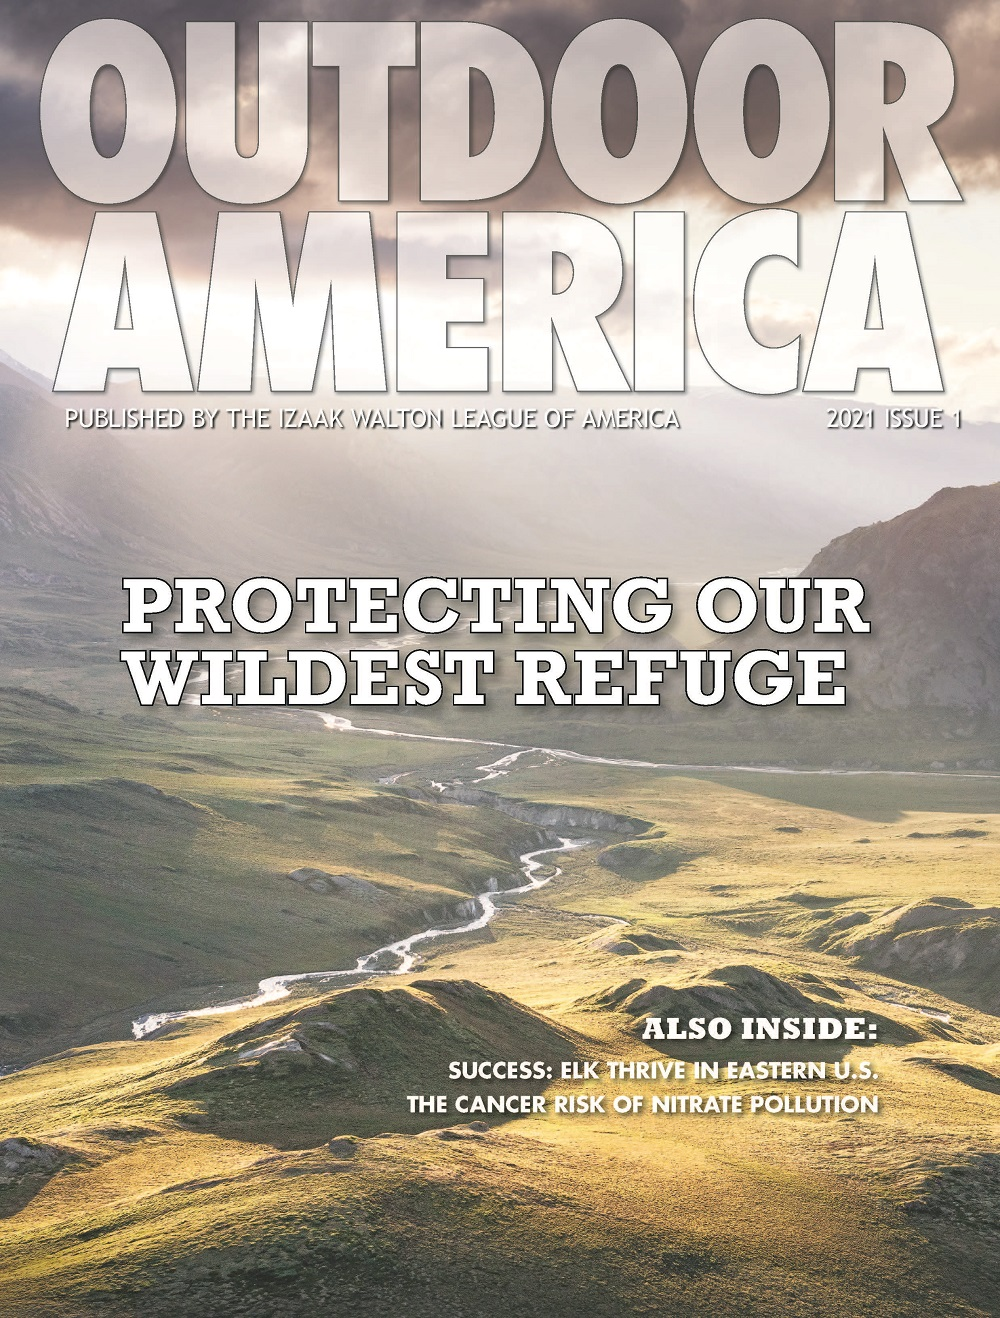 Outdoor America 2021 Issue 1